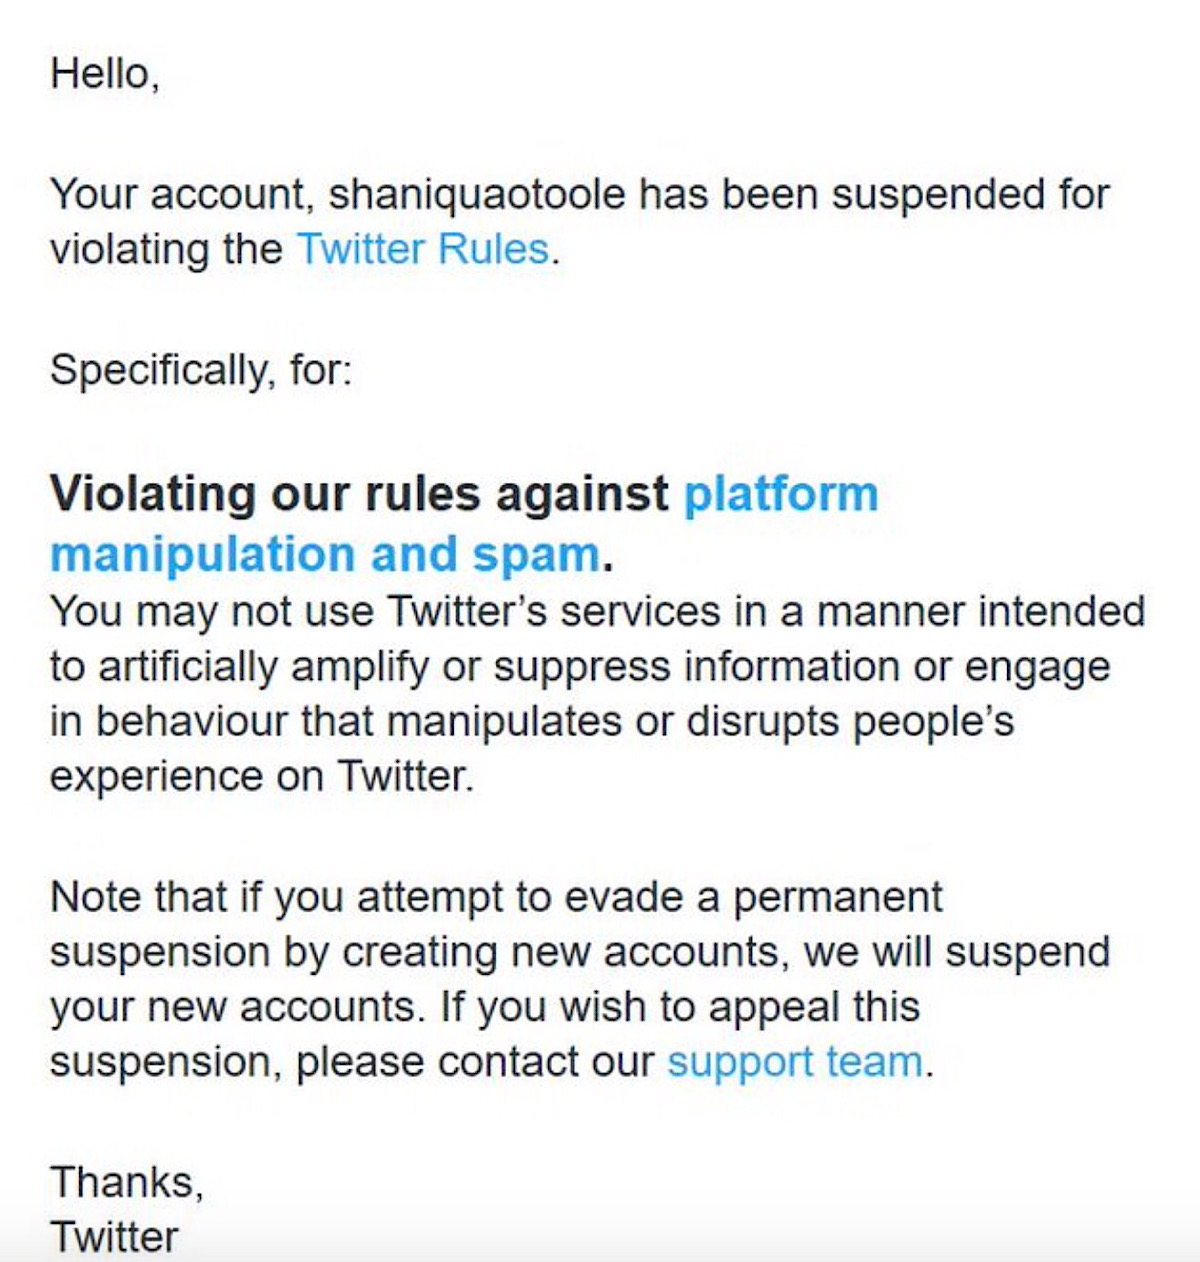 Twitter's message telling Shanique O'Toole that the account has been suspended.